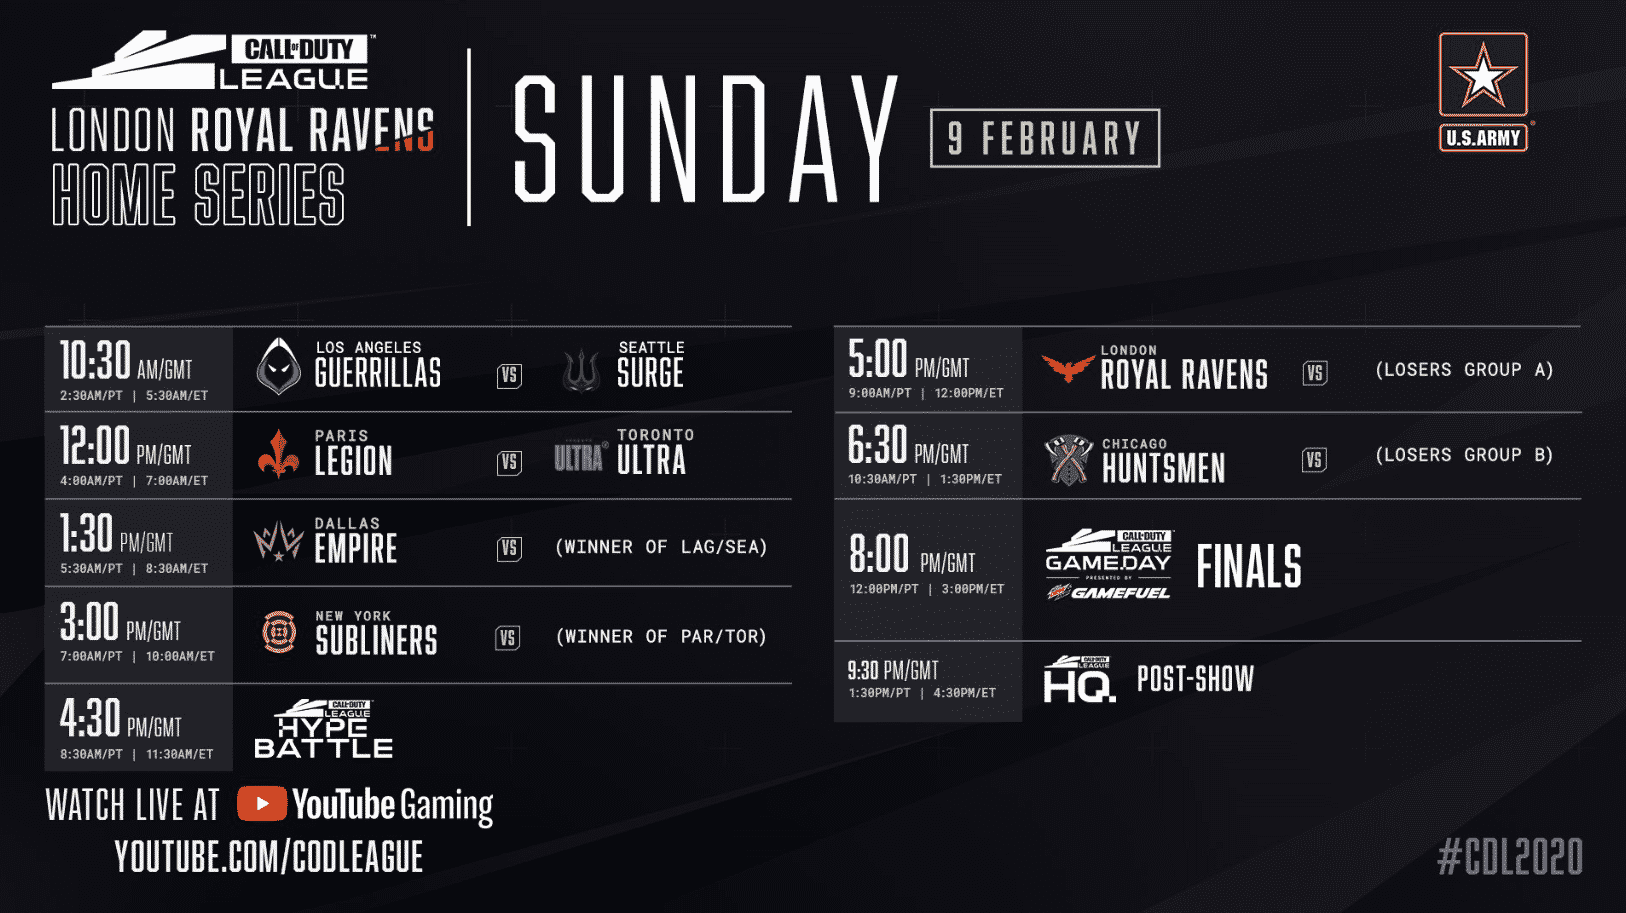 London Home Series Sunday Schedule Feb 9